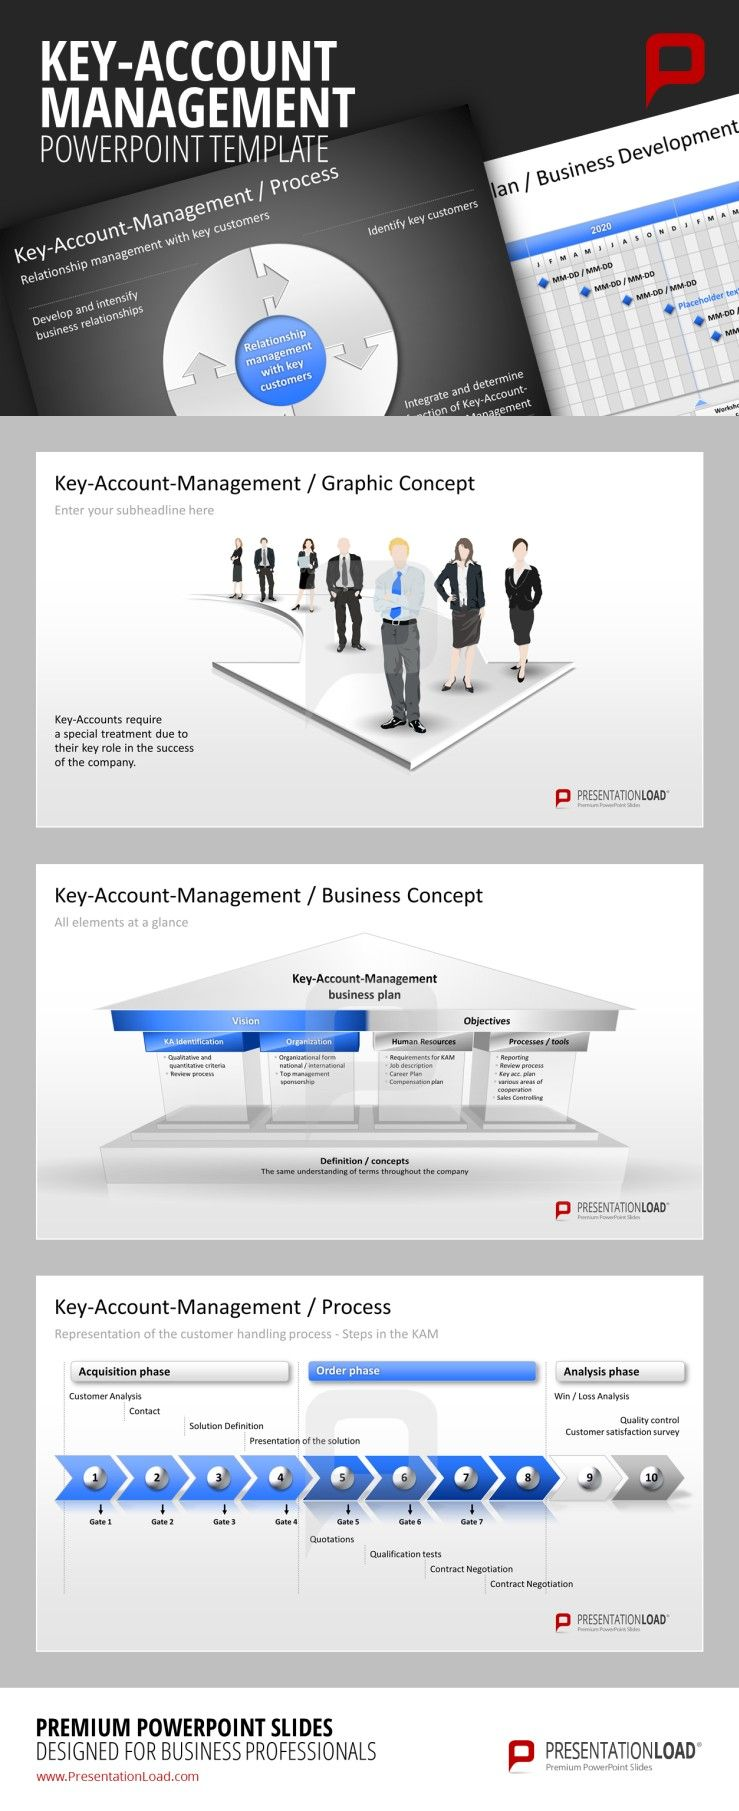 Key-Account Management templates for your next ppt presentation ...